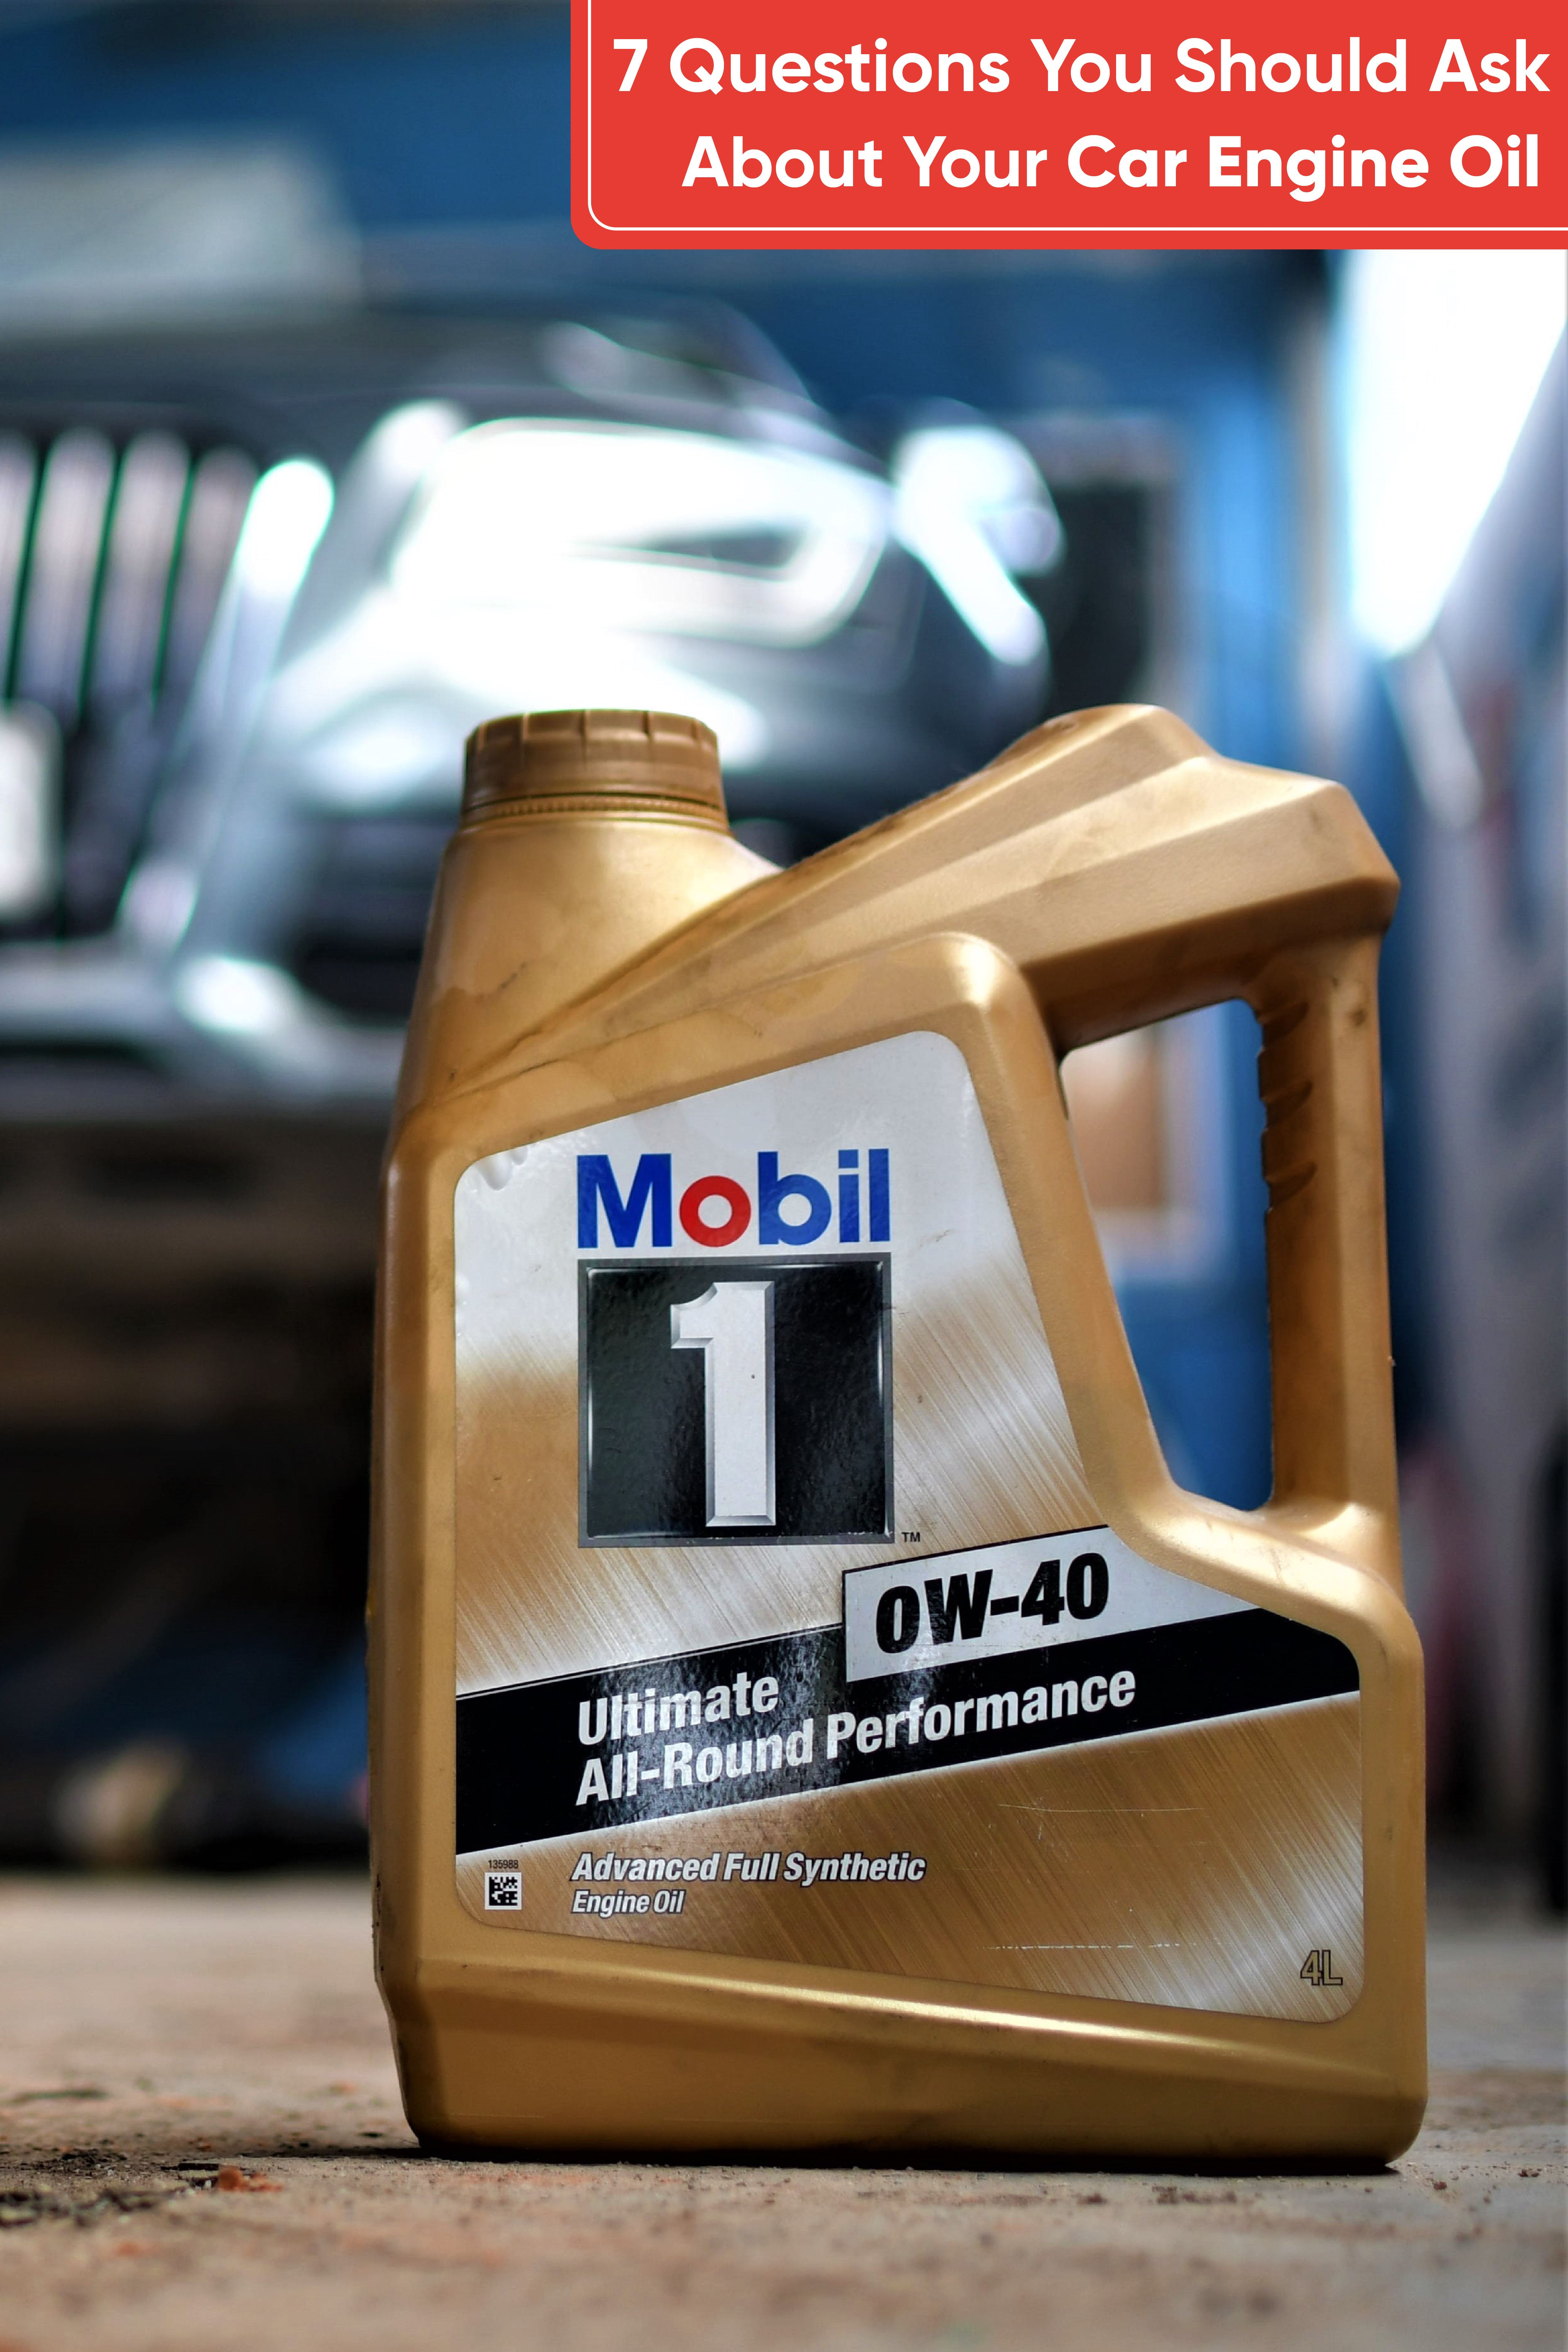 7 Questions You Should Ask About Your Car Engine Oil Car Engine